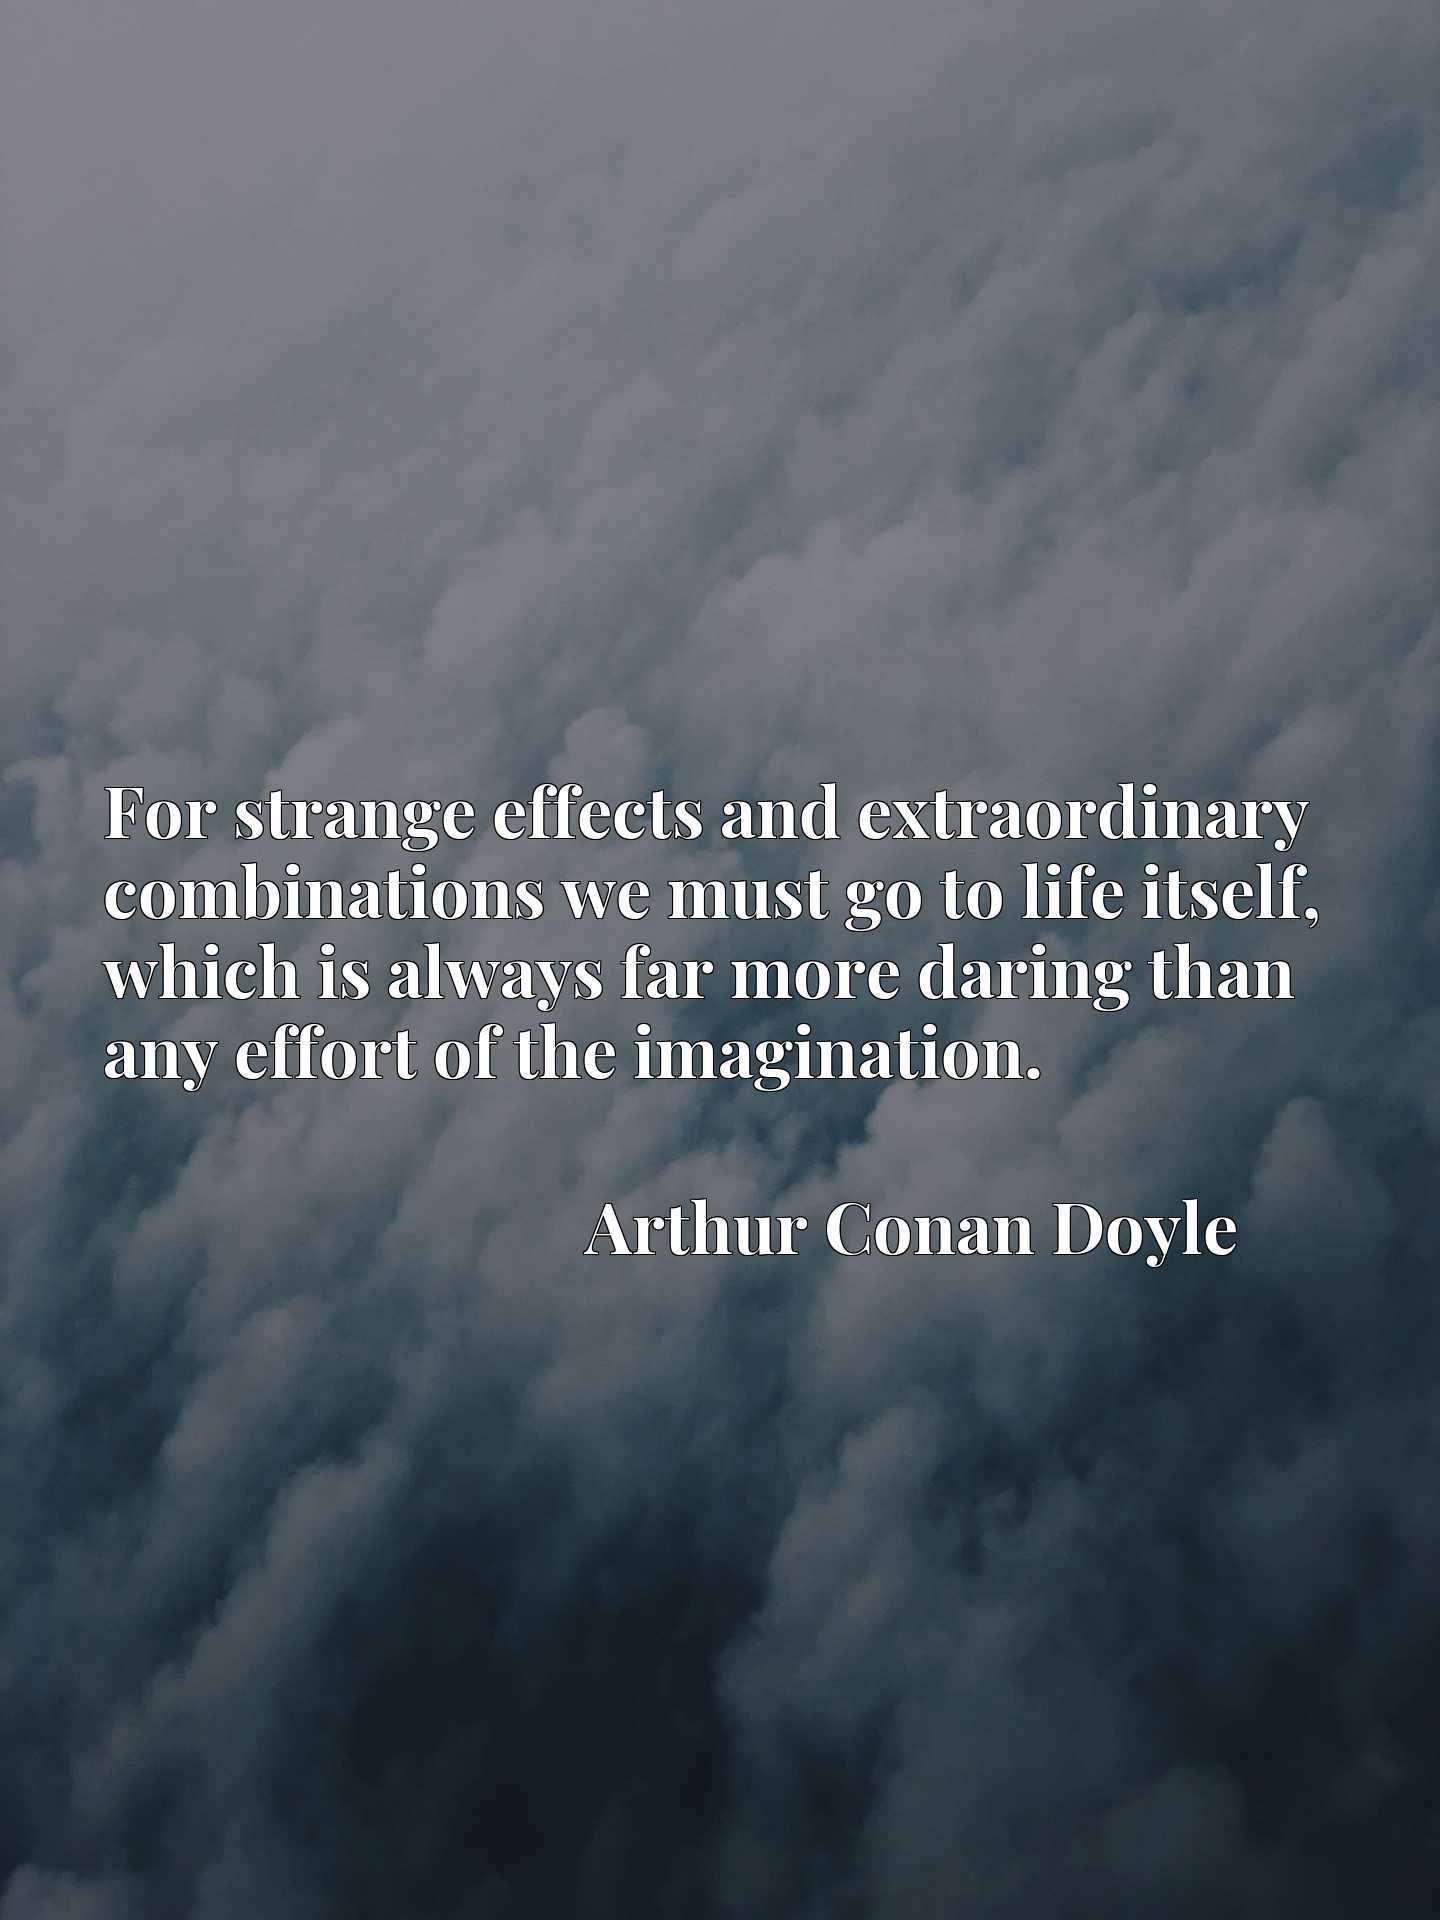 Quote Picture :For strange effects and extraordinary combinations we must go to life itself, which is always far more daring than any effort of the imagination.